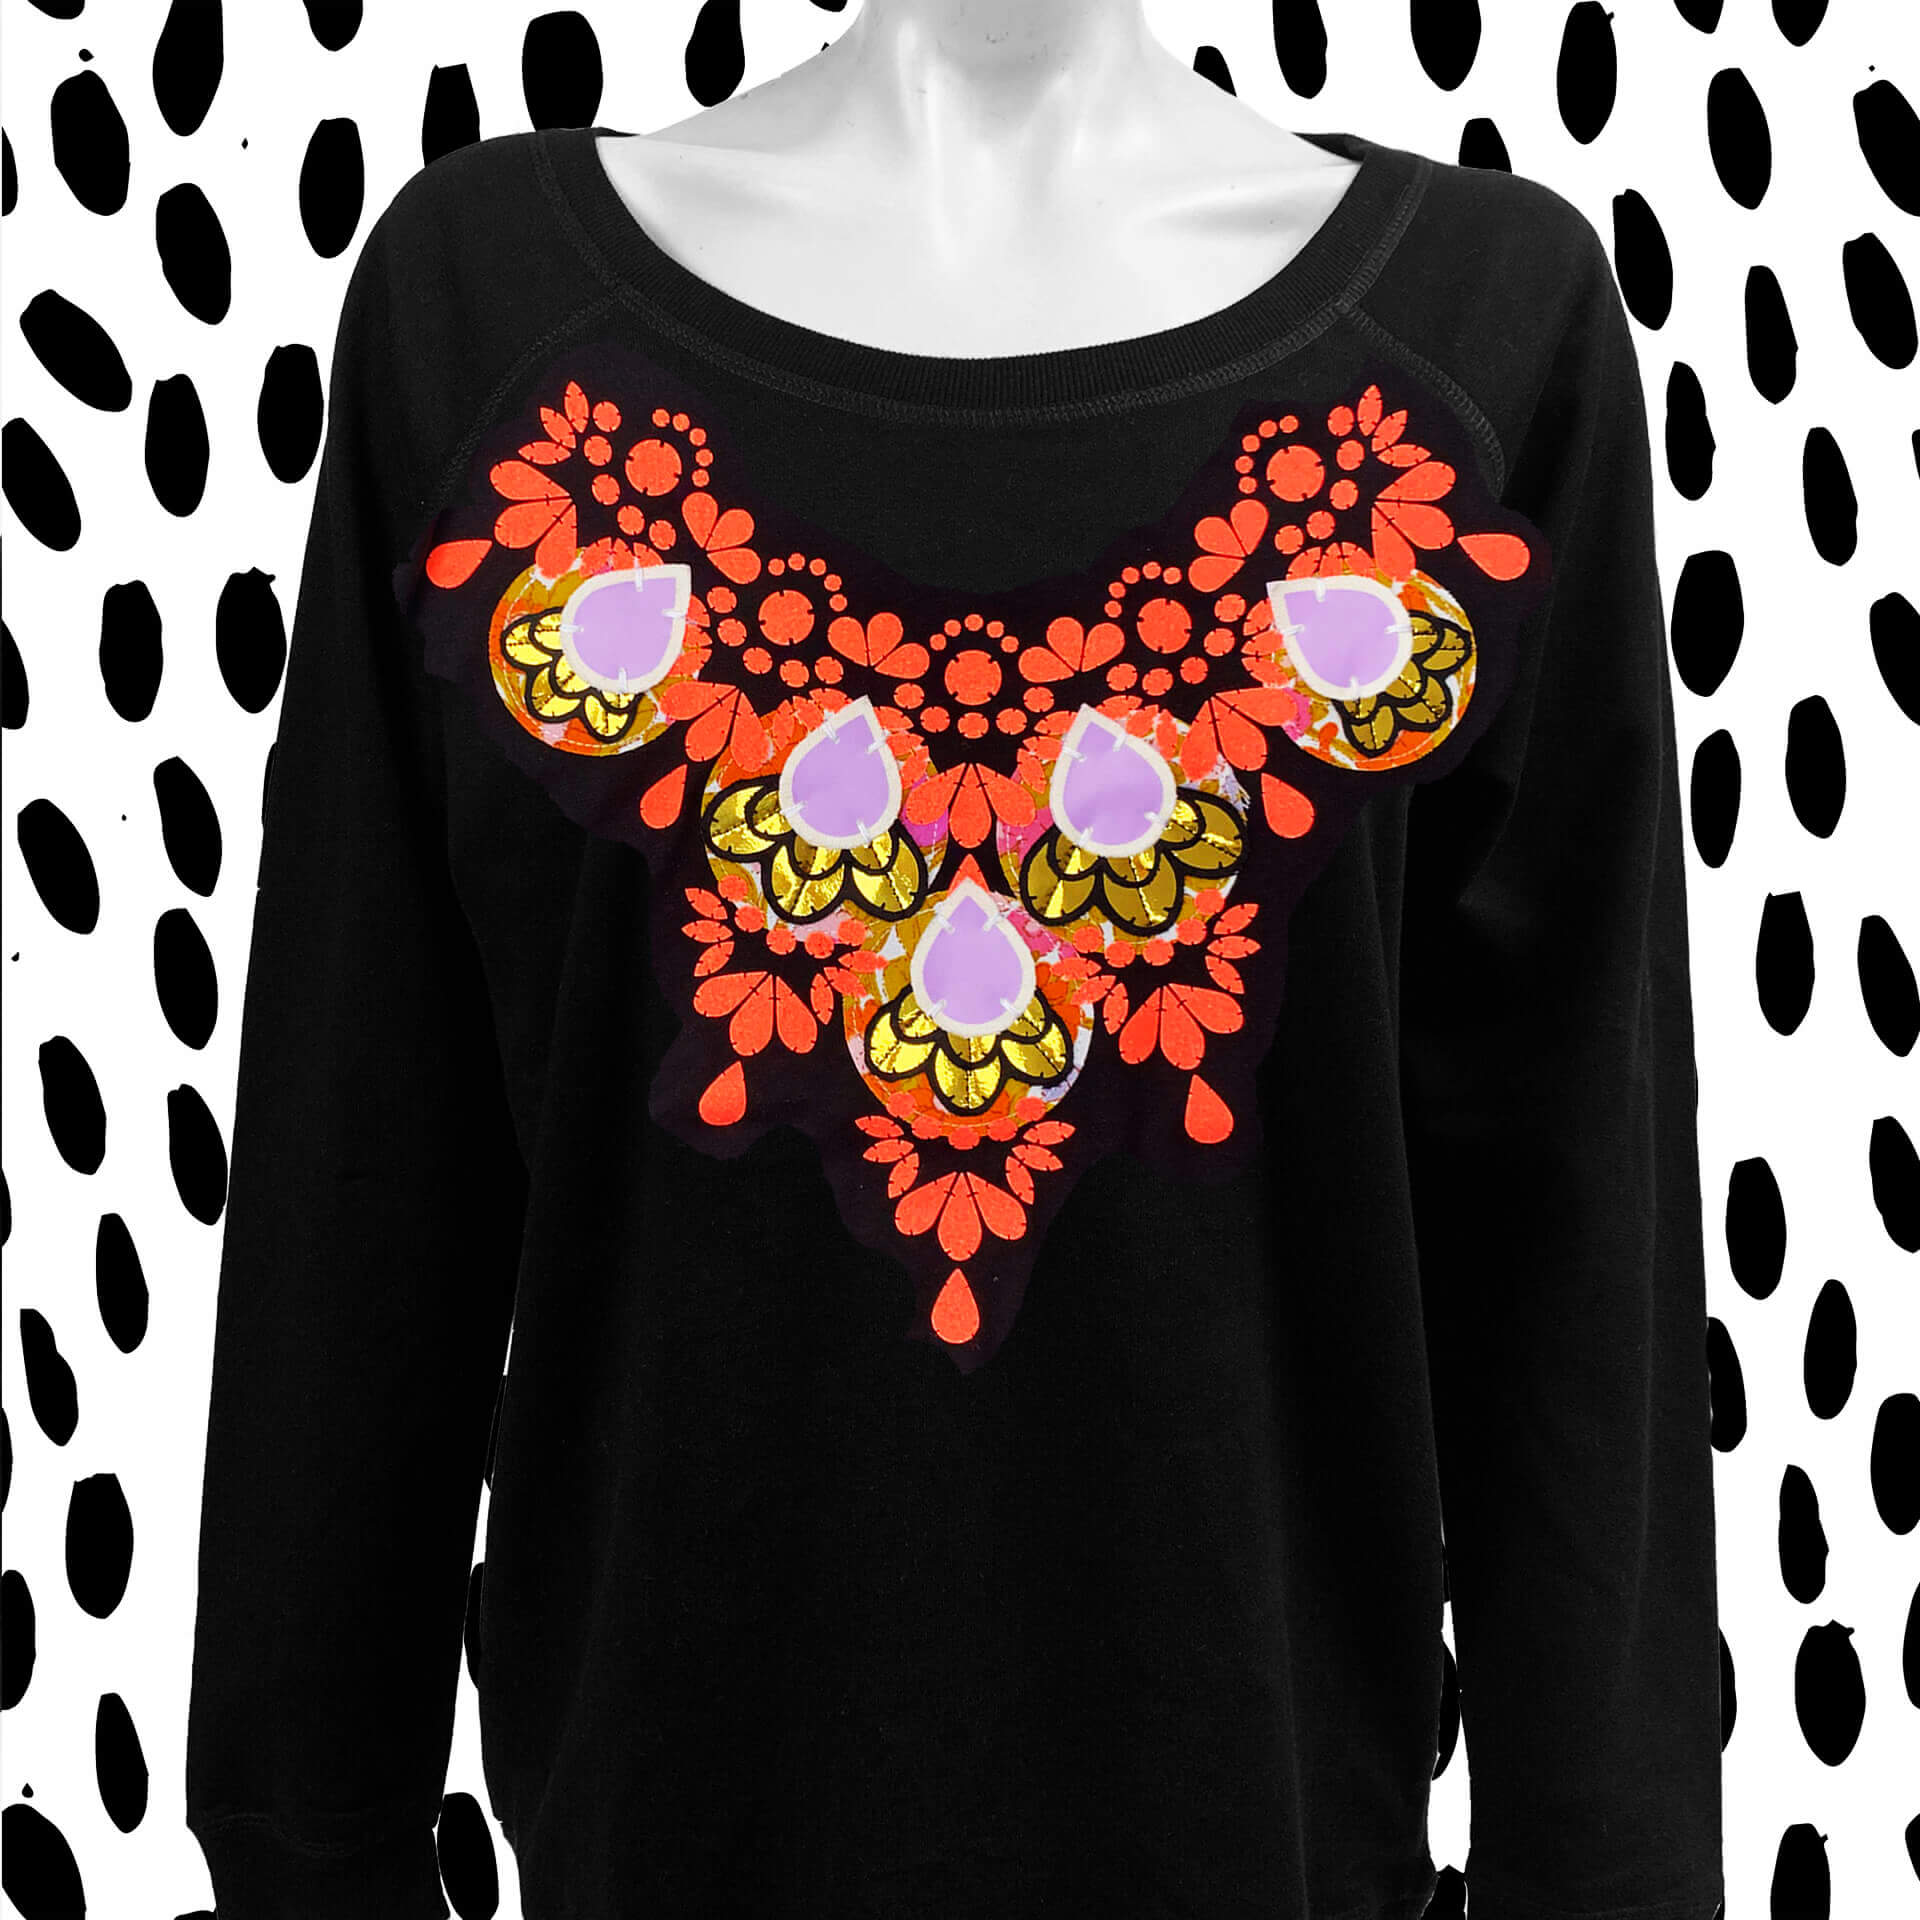 A black wide neck sweatshirt worn by a white mannequin, against a black and white patterned background. The sweatshirt has a decorative neon coral, gold and lilac print over the bib area.